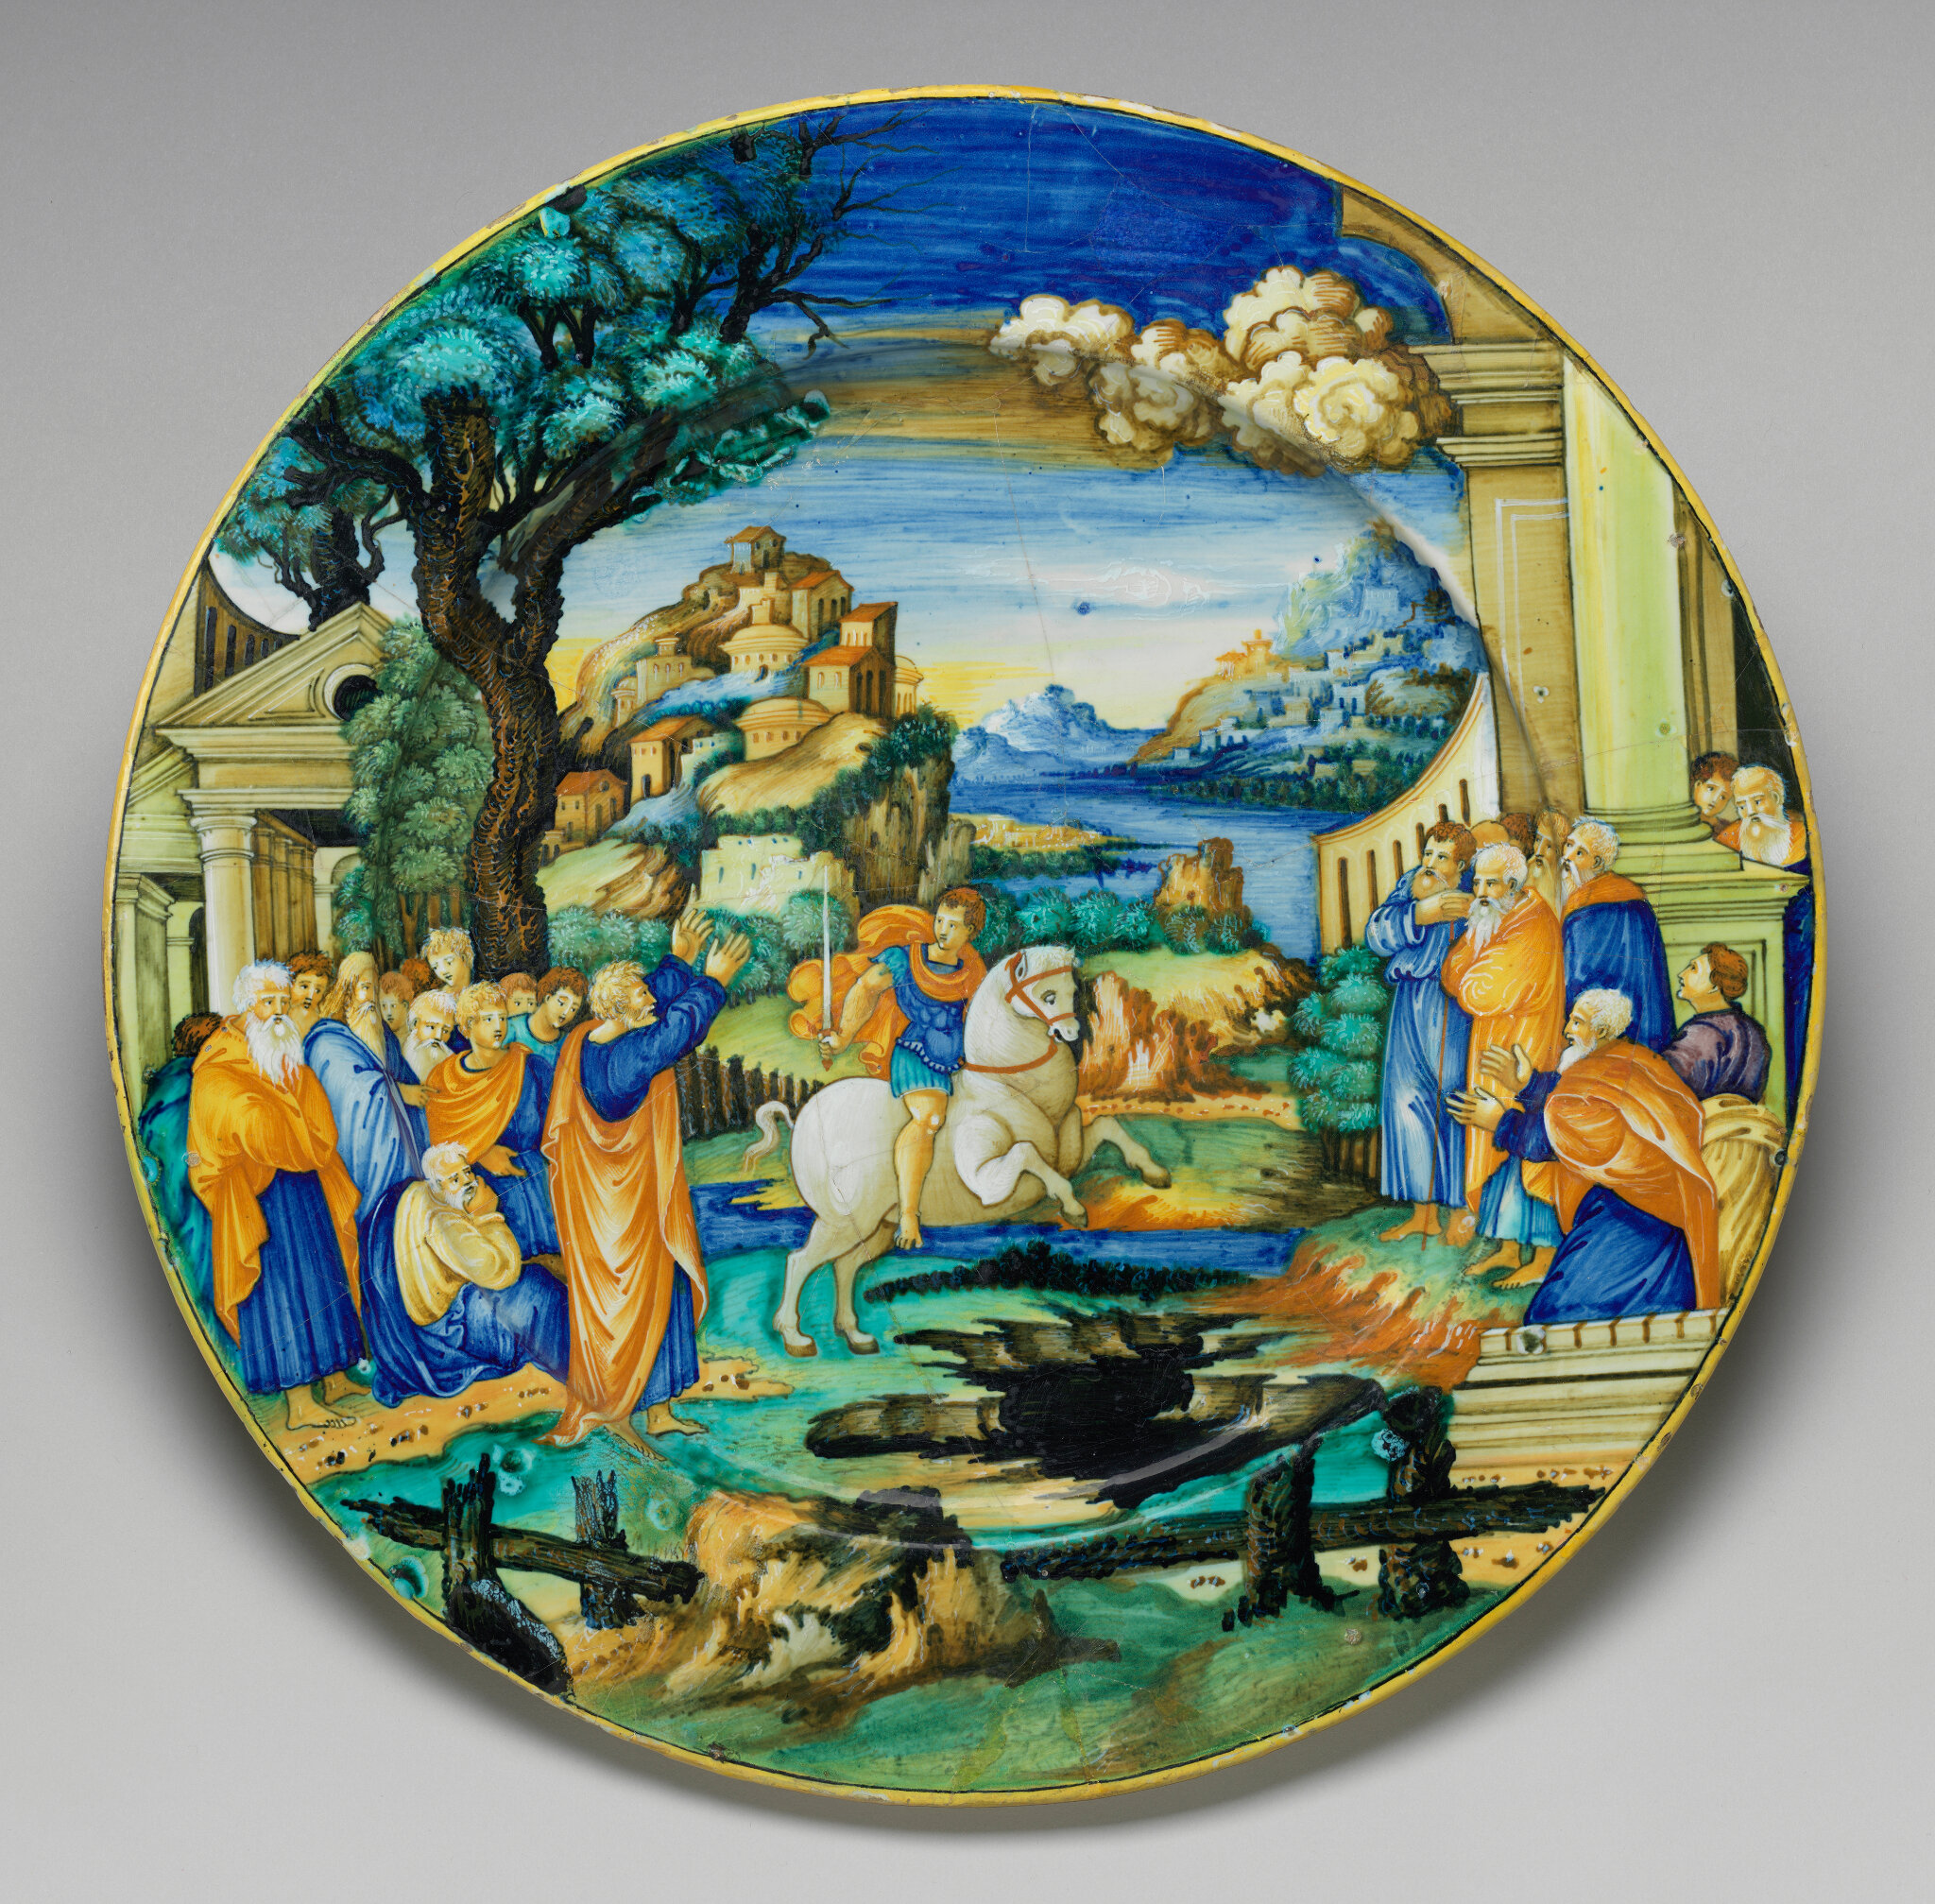 influences of the renaissance upon the The influences upon the development of renaissance men and women in the early 15th century are those that also affected philosophy, literature, architecture, theology, science, government, and other aspects of society.